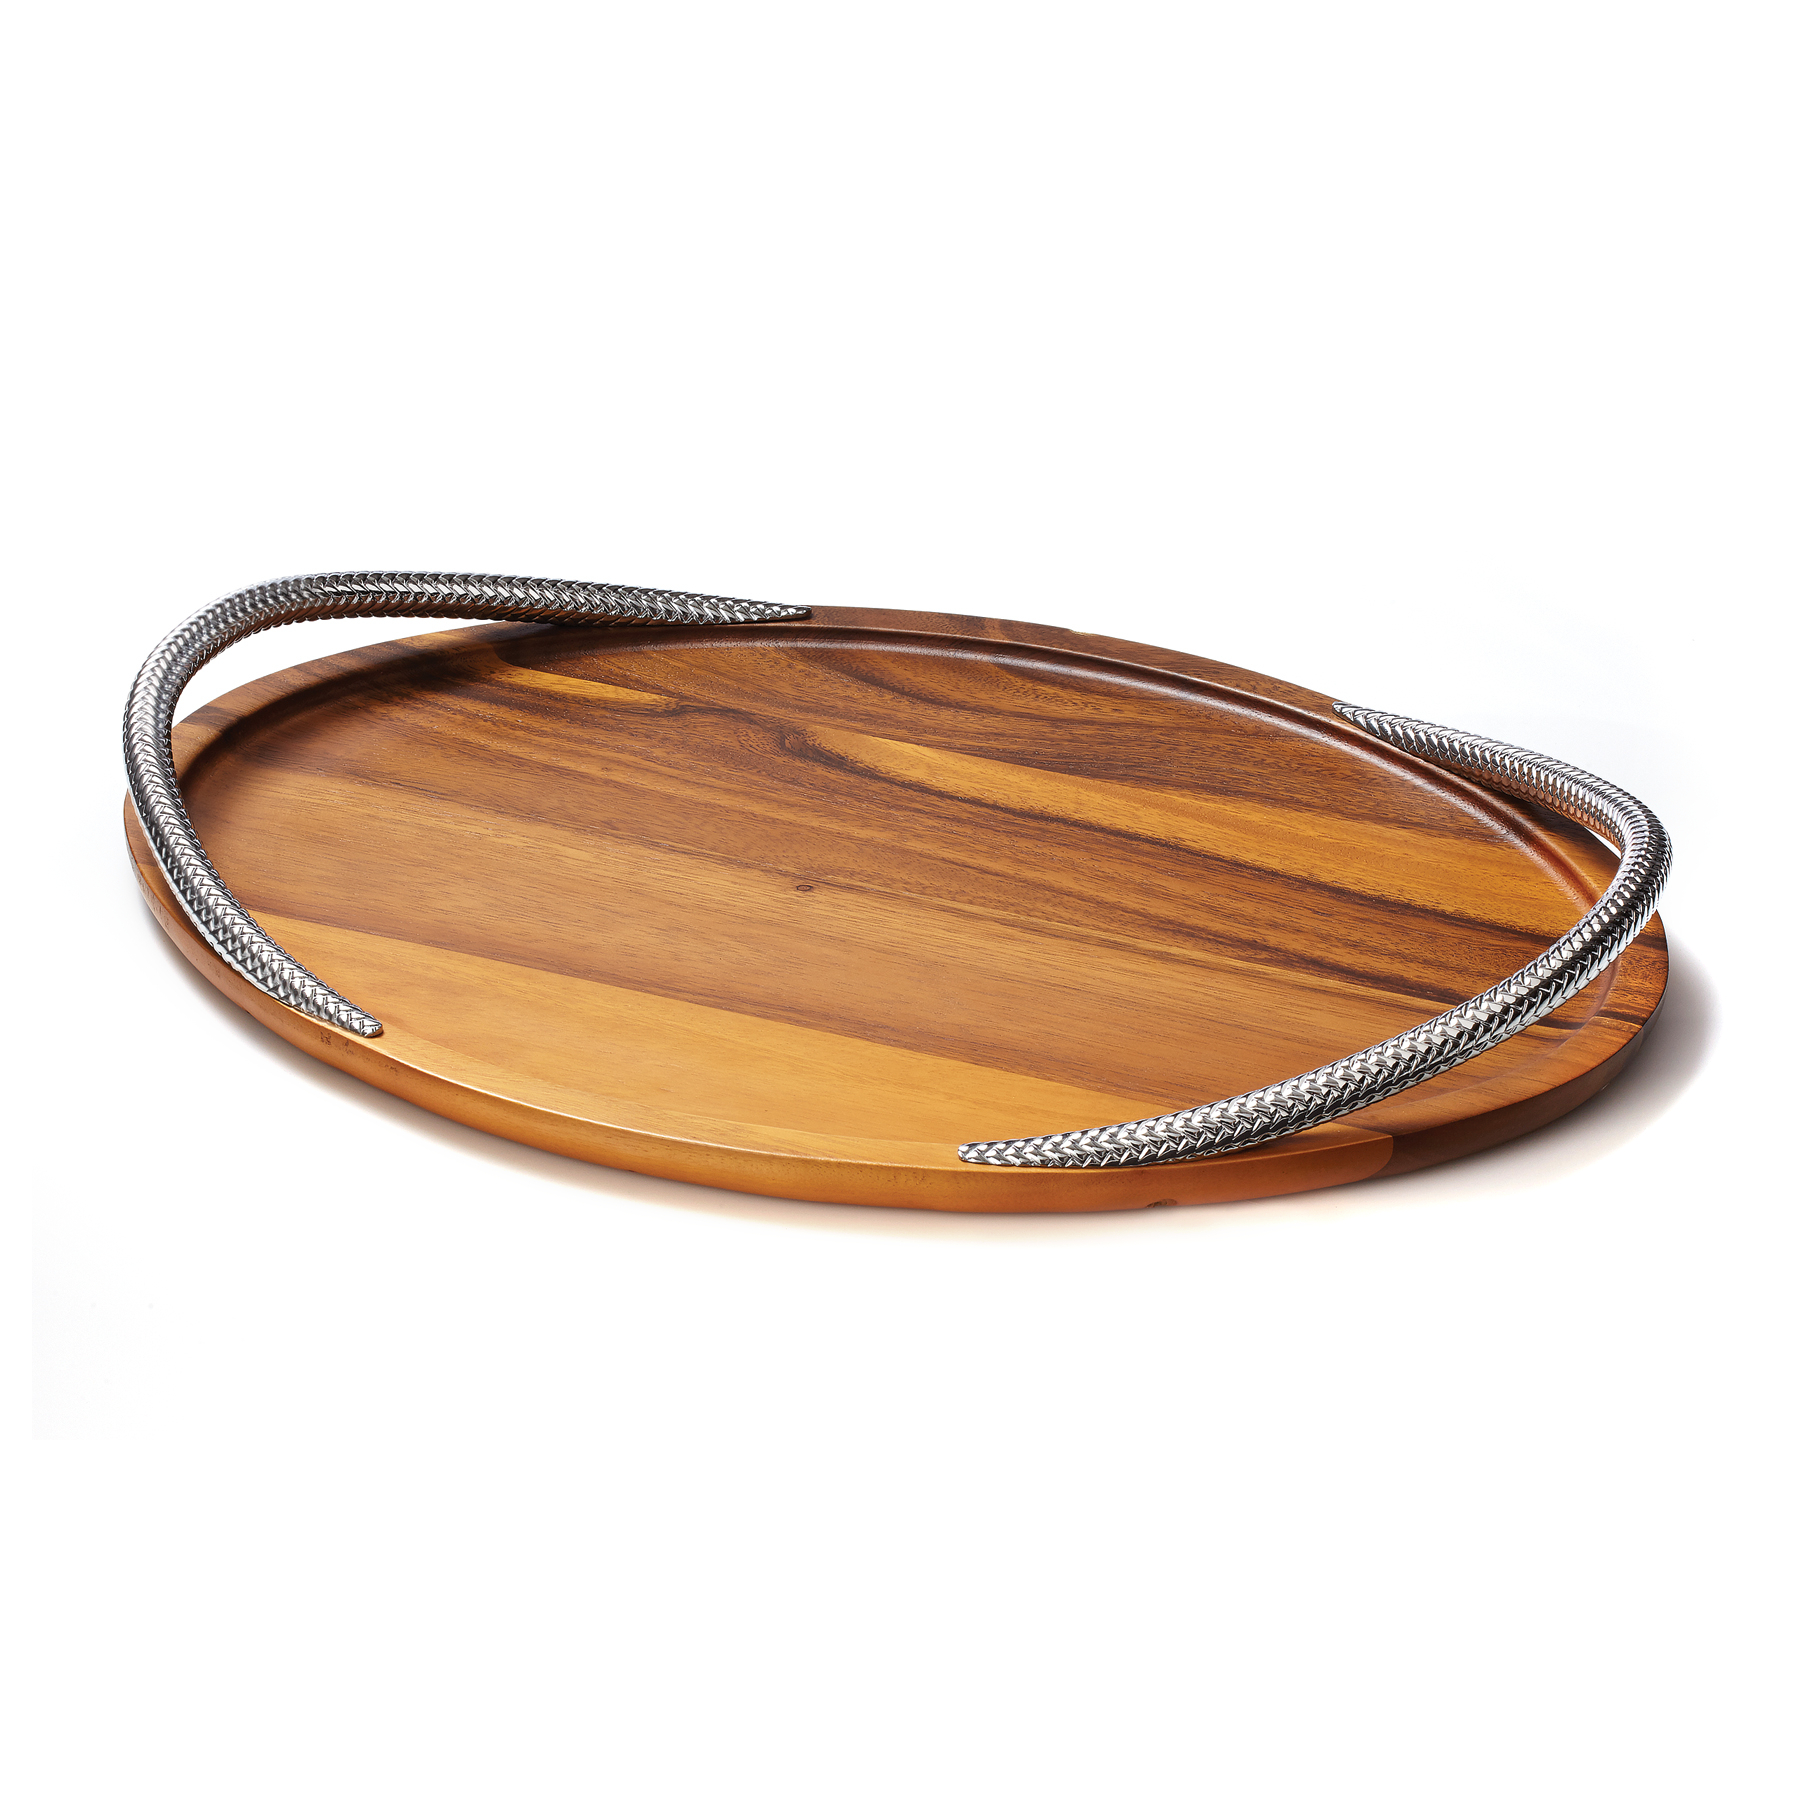 Nambe Braid Chrome Plate and Wood Serving Tray